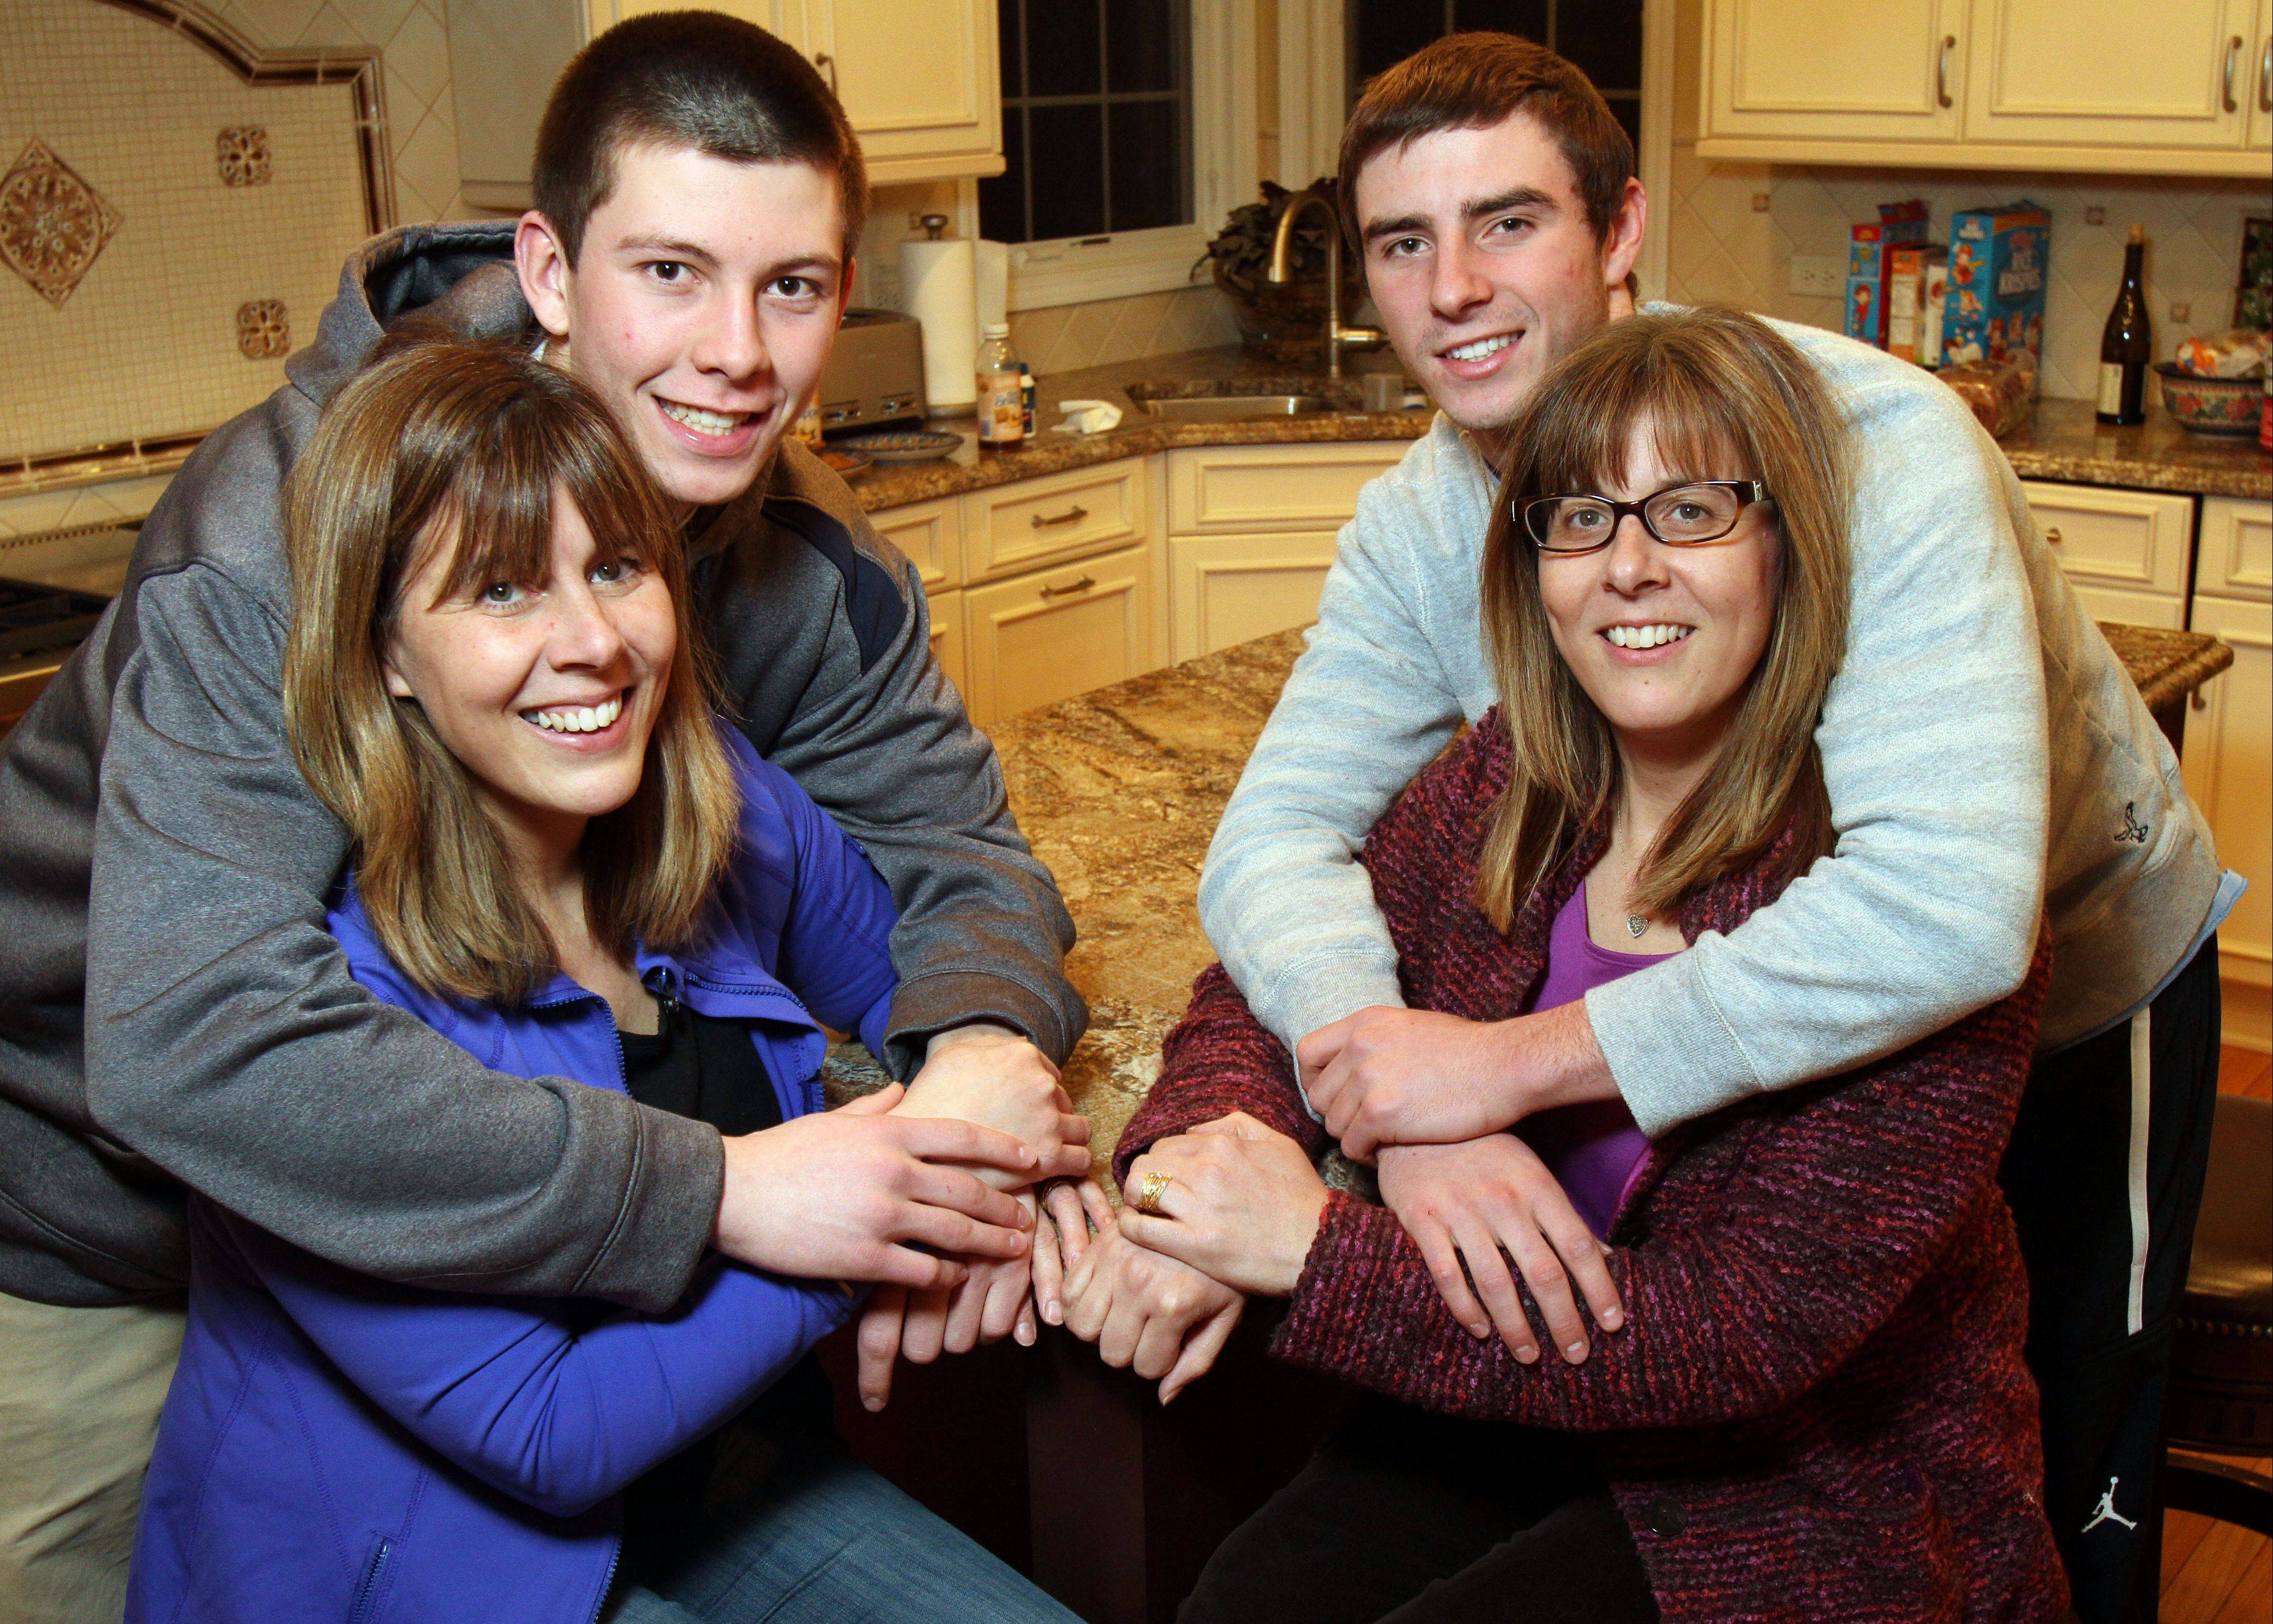 Ryan Roach and his mother Kim, left, and John Repplinger and his mother Justine. The boys are cousins and both guards on Lake Zurich�s boys basketball team; the moms are twins.